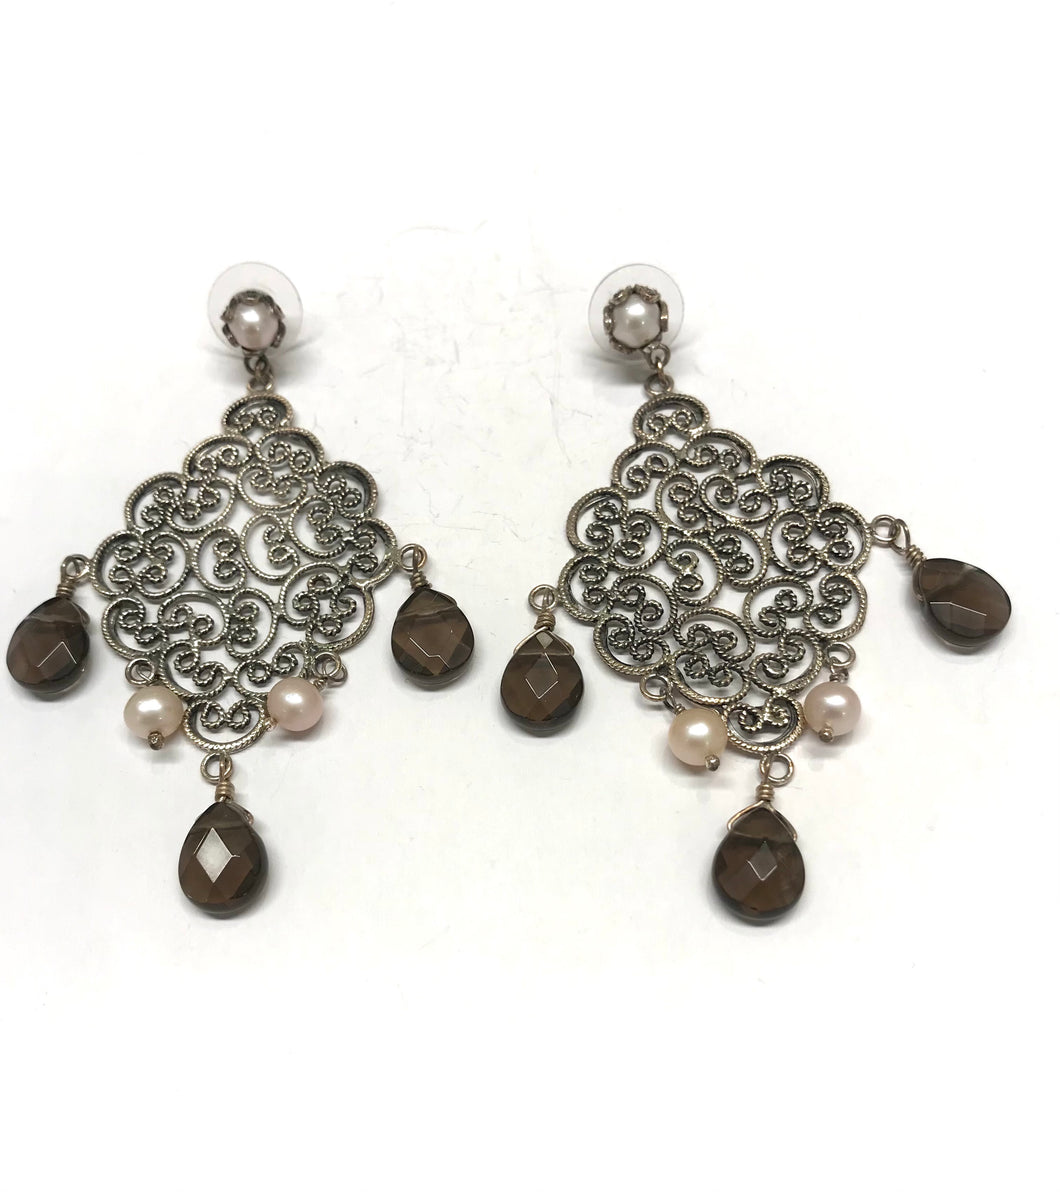 Filigree earrings with Topaz and pearls